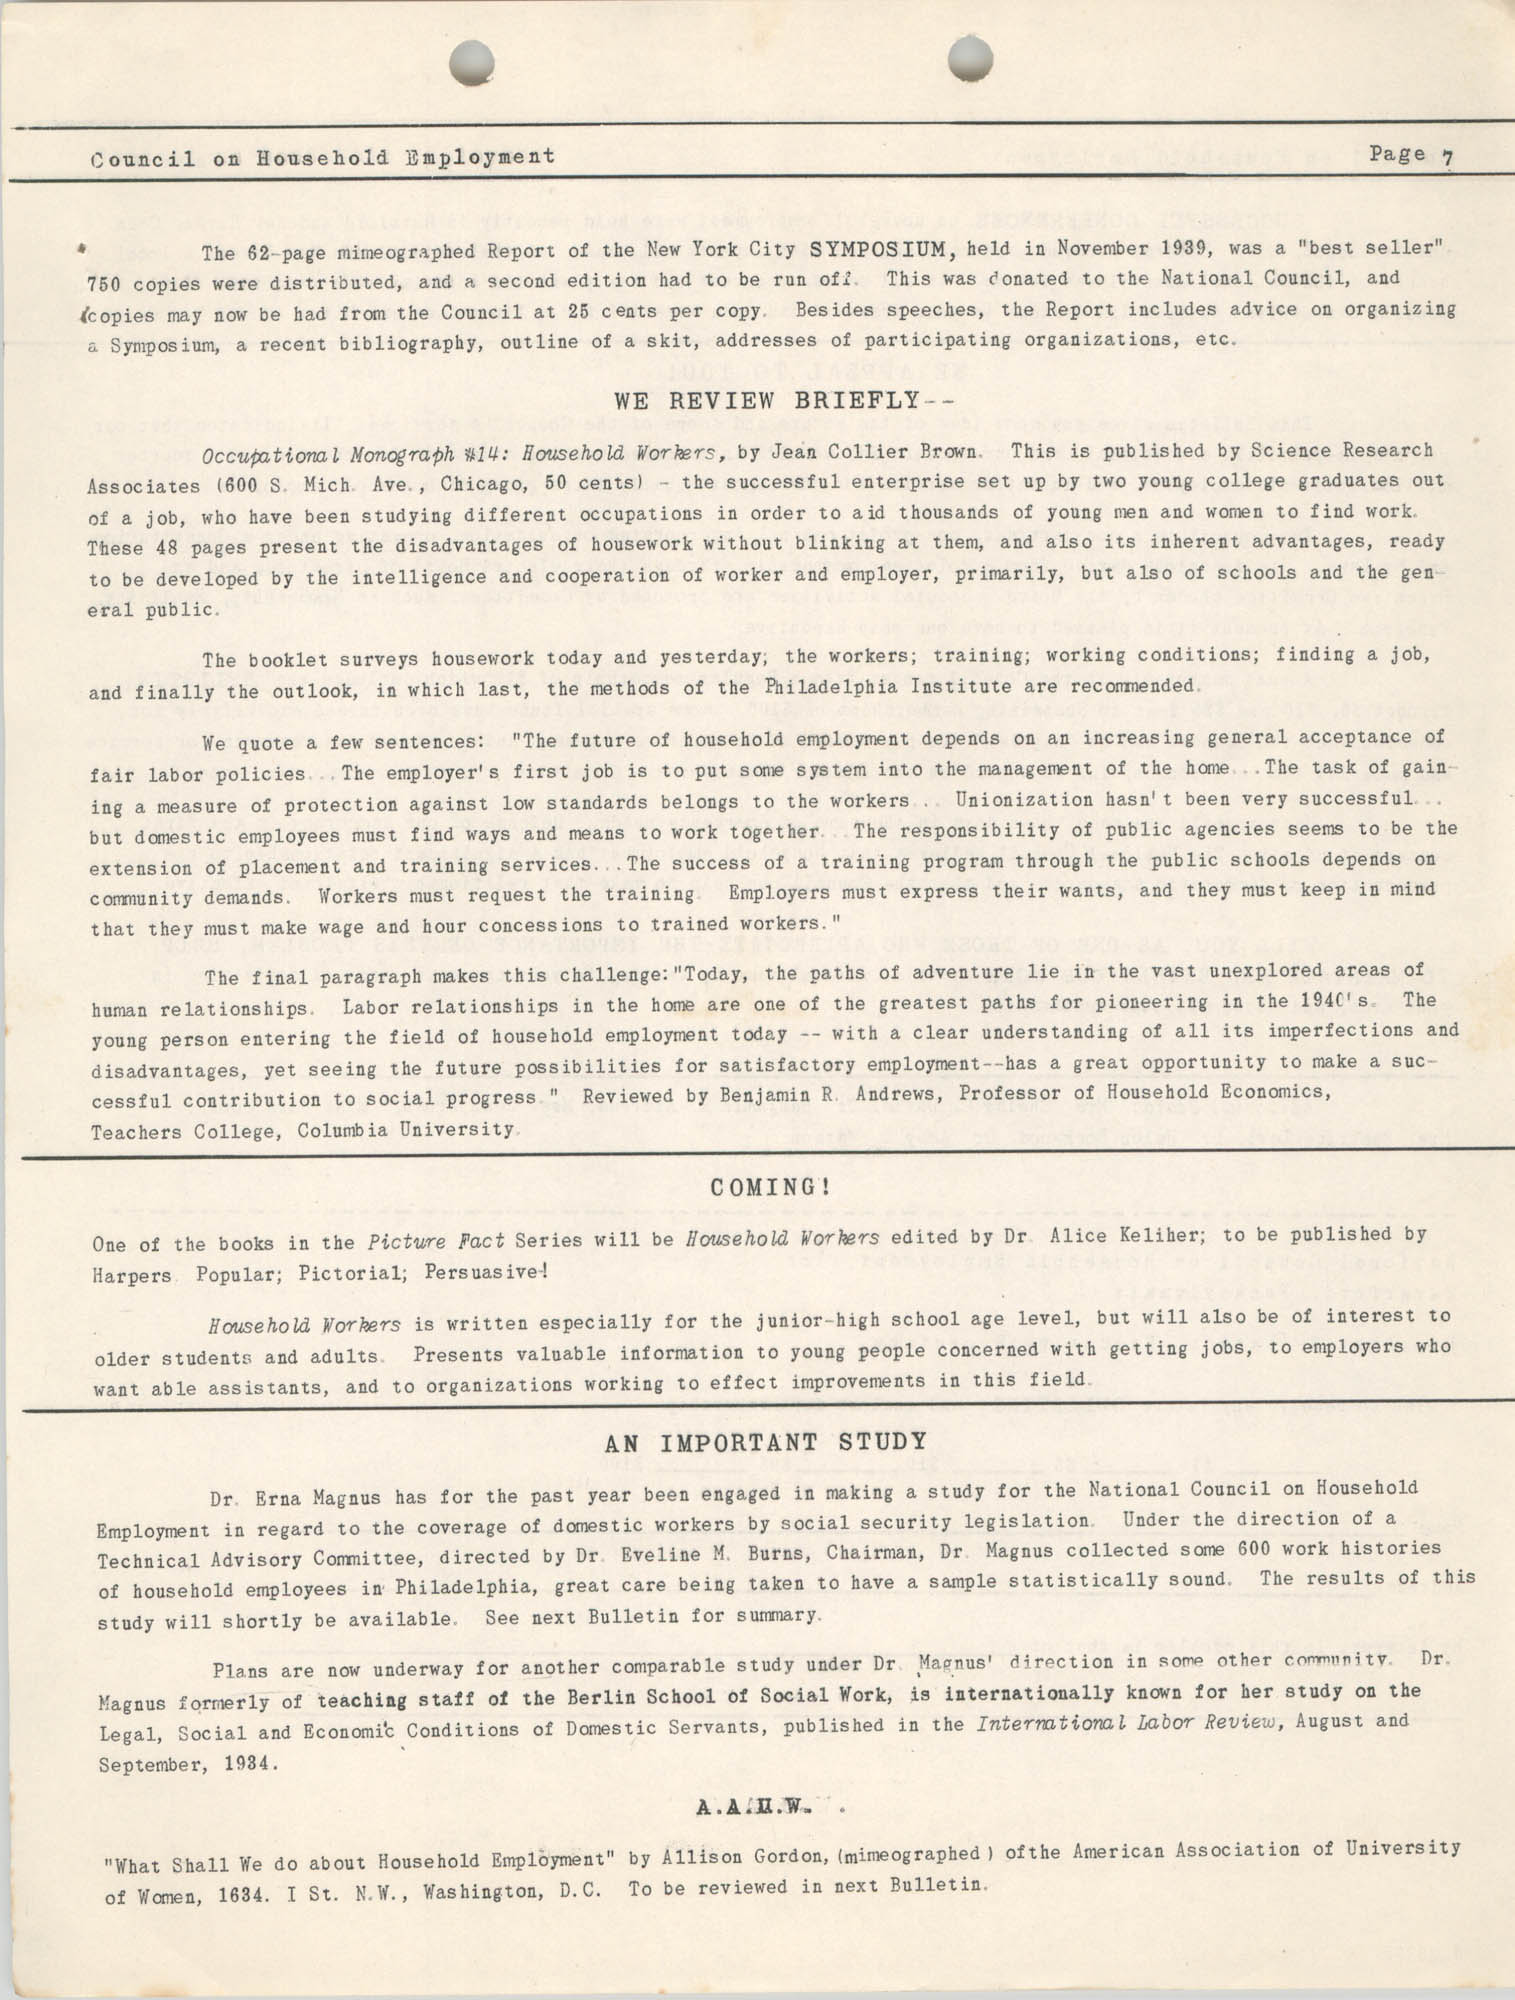 Bulletin of the National Council on Household Employment, Series II, No. 1, December 1940, Page 7